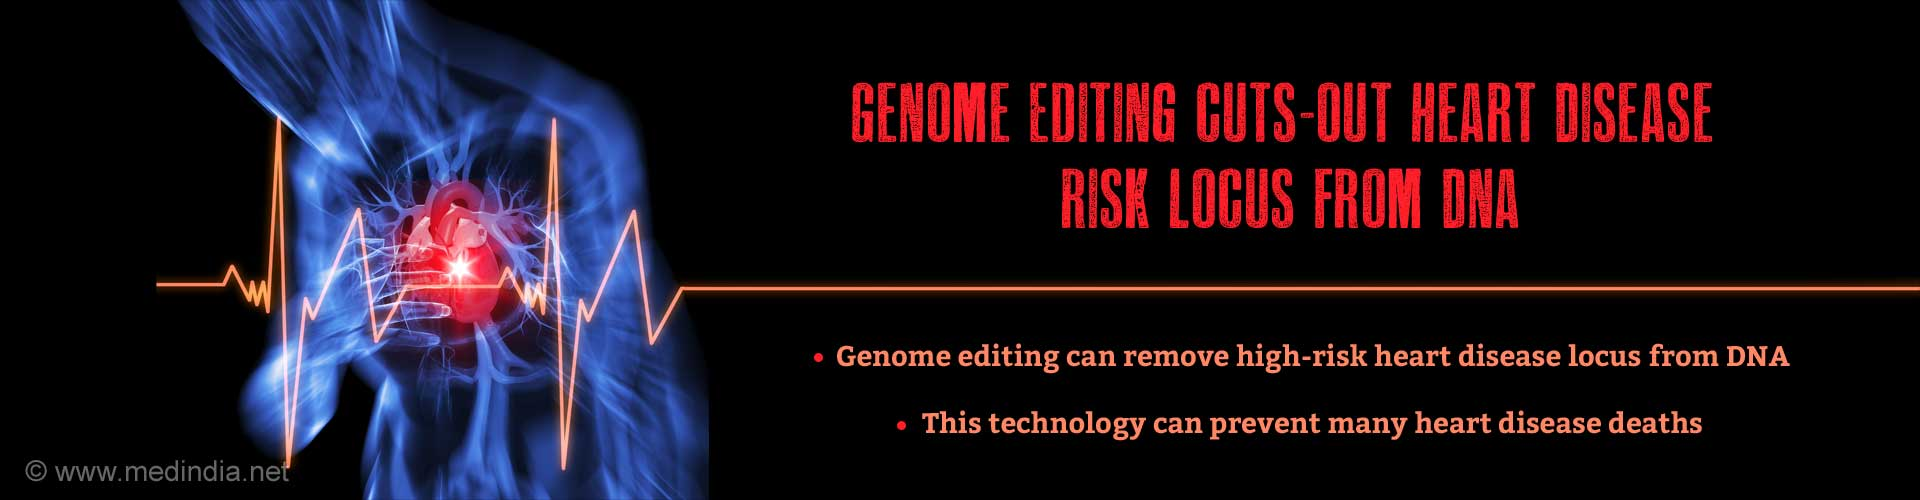 Genome Editing Removes Major Heart Disease Risk Locus from DNA